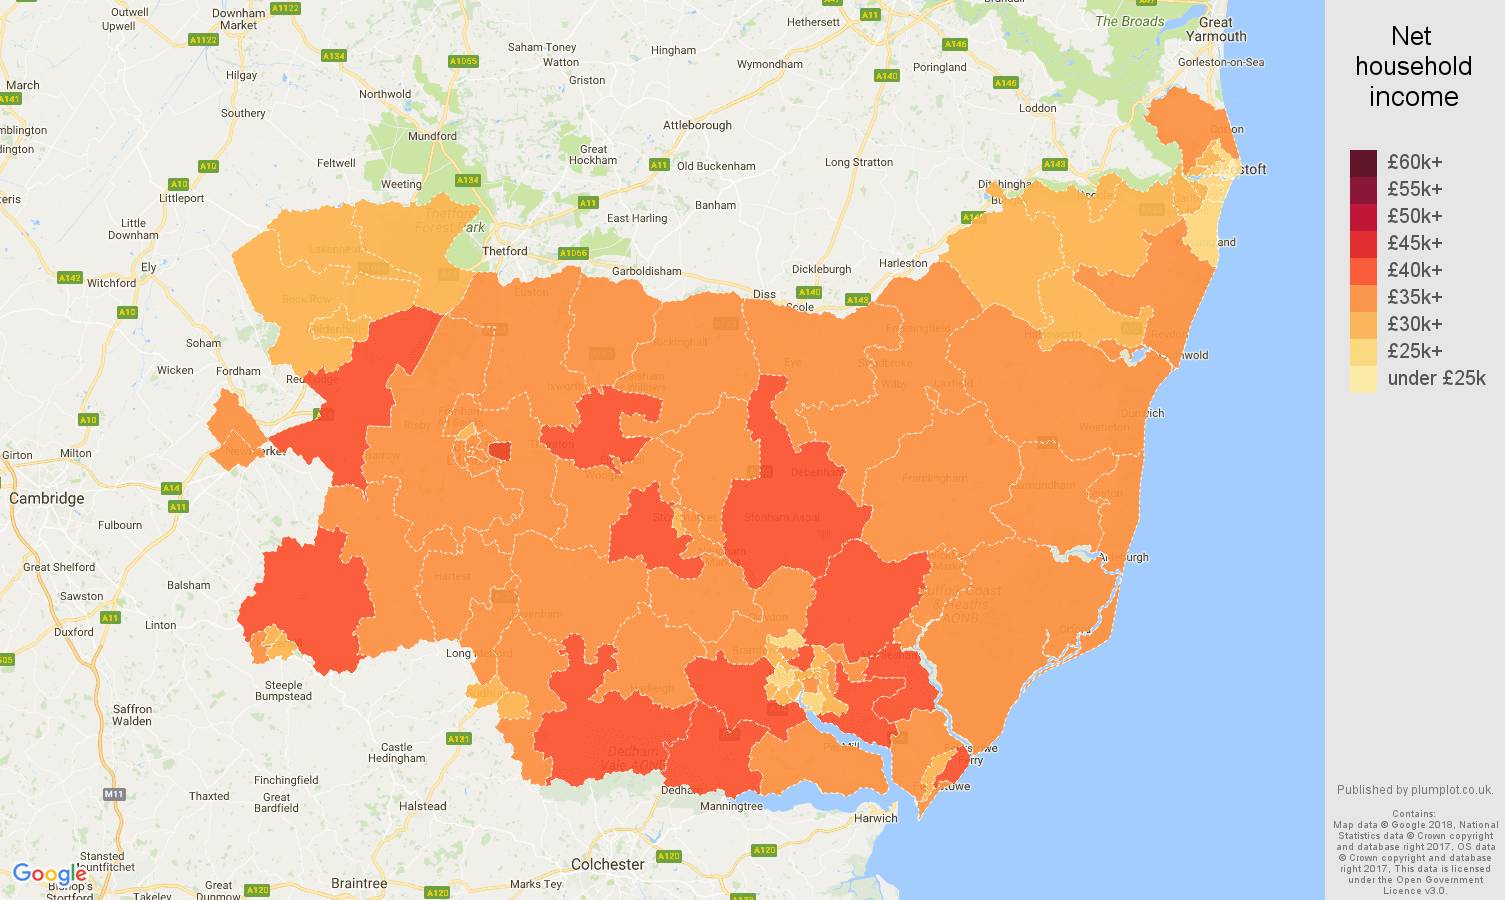 Suffolk net household income map